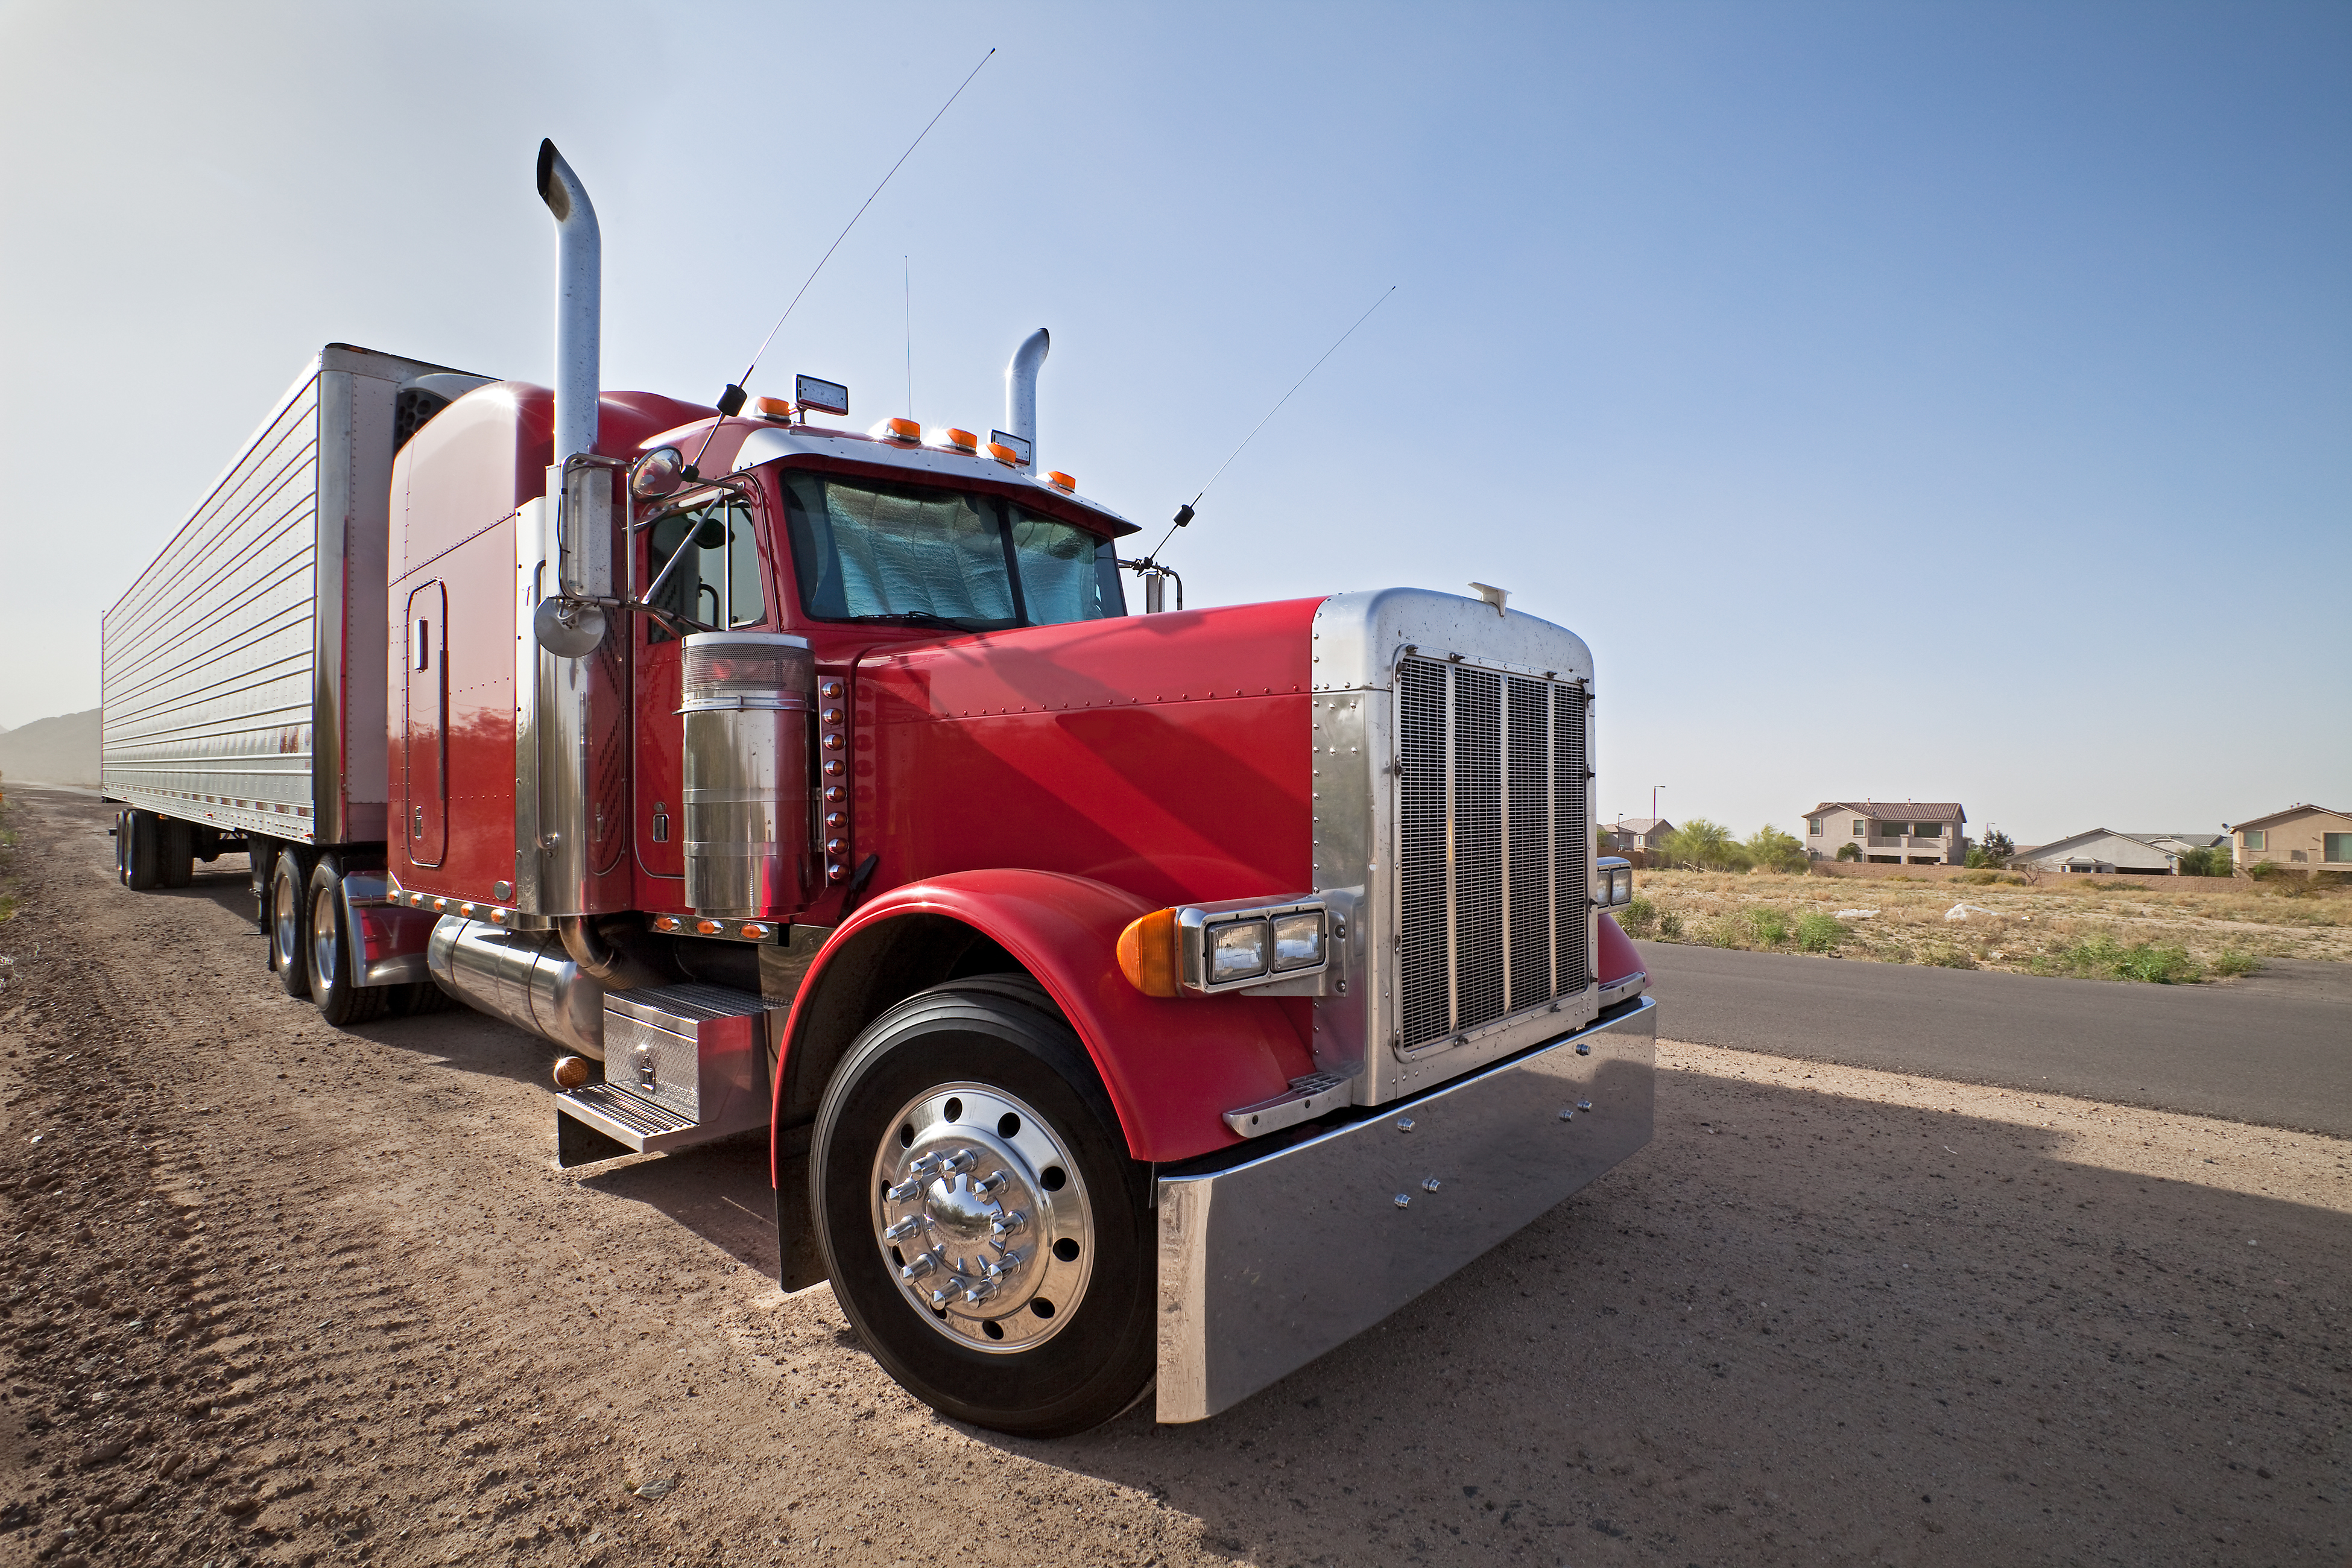 Shared truckload offers pricing benefits to shippers, carriers